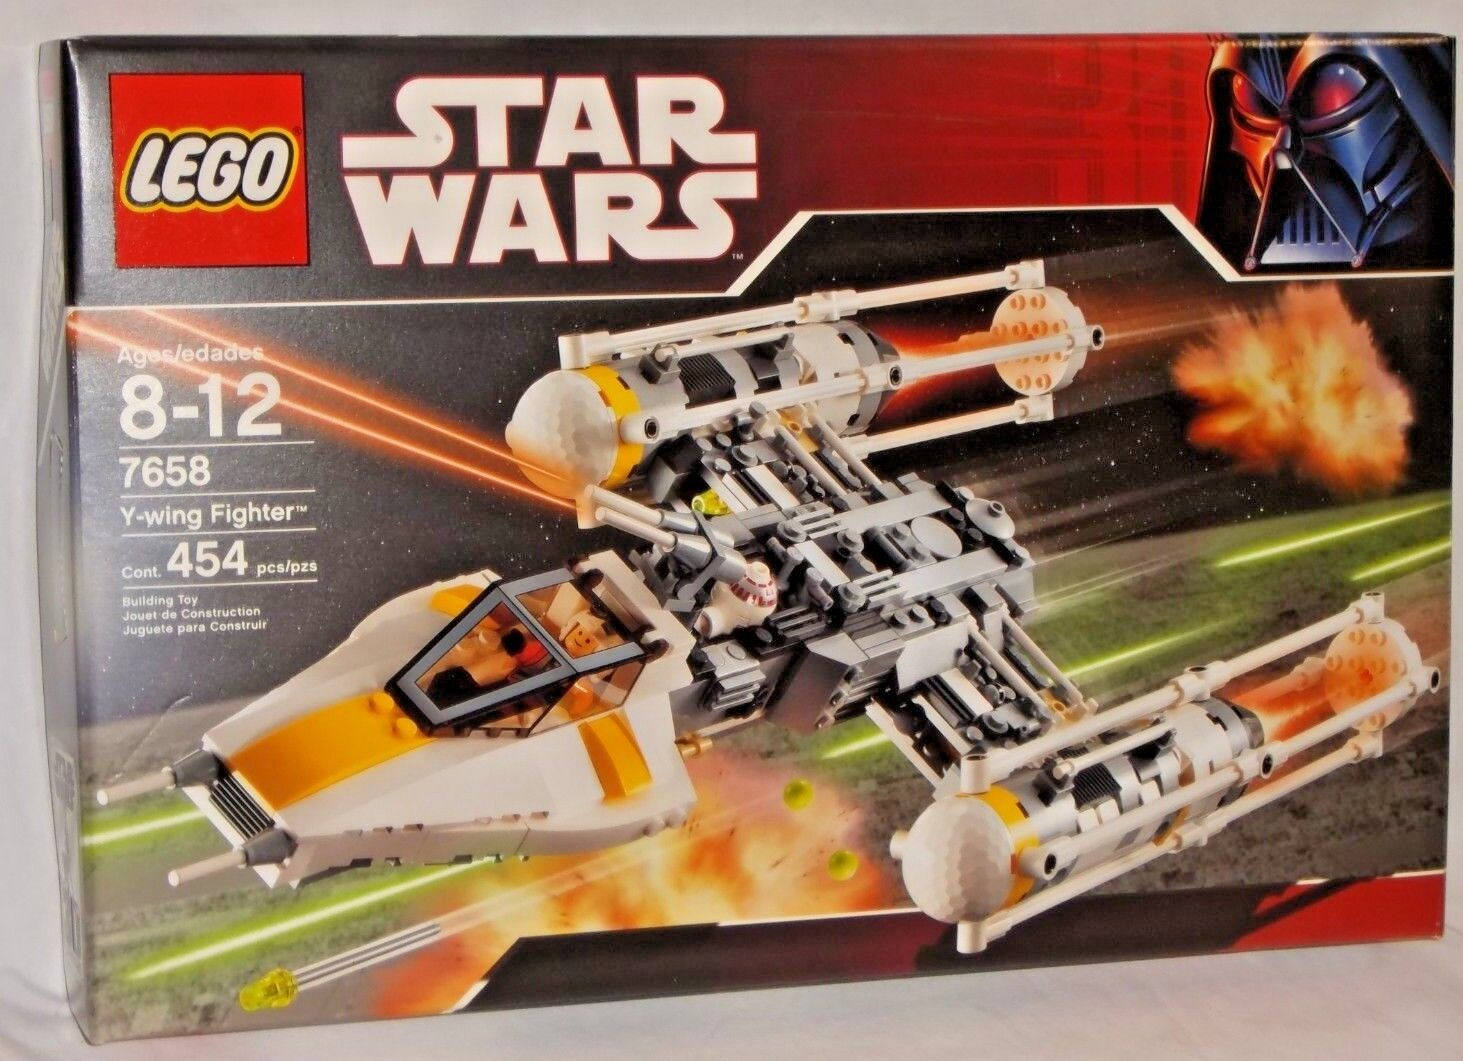 SEALED 7658 LEGO Star Wars Y-WING FIGHTER Space Vehicle Pilot Droid 454 pc Set